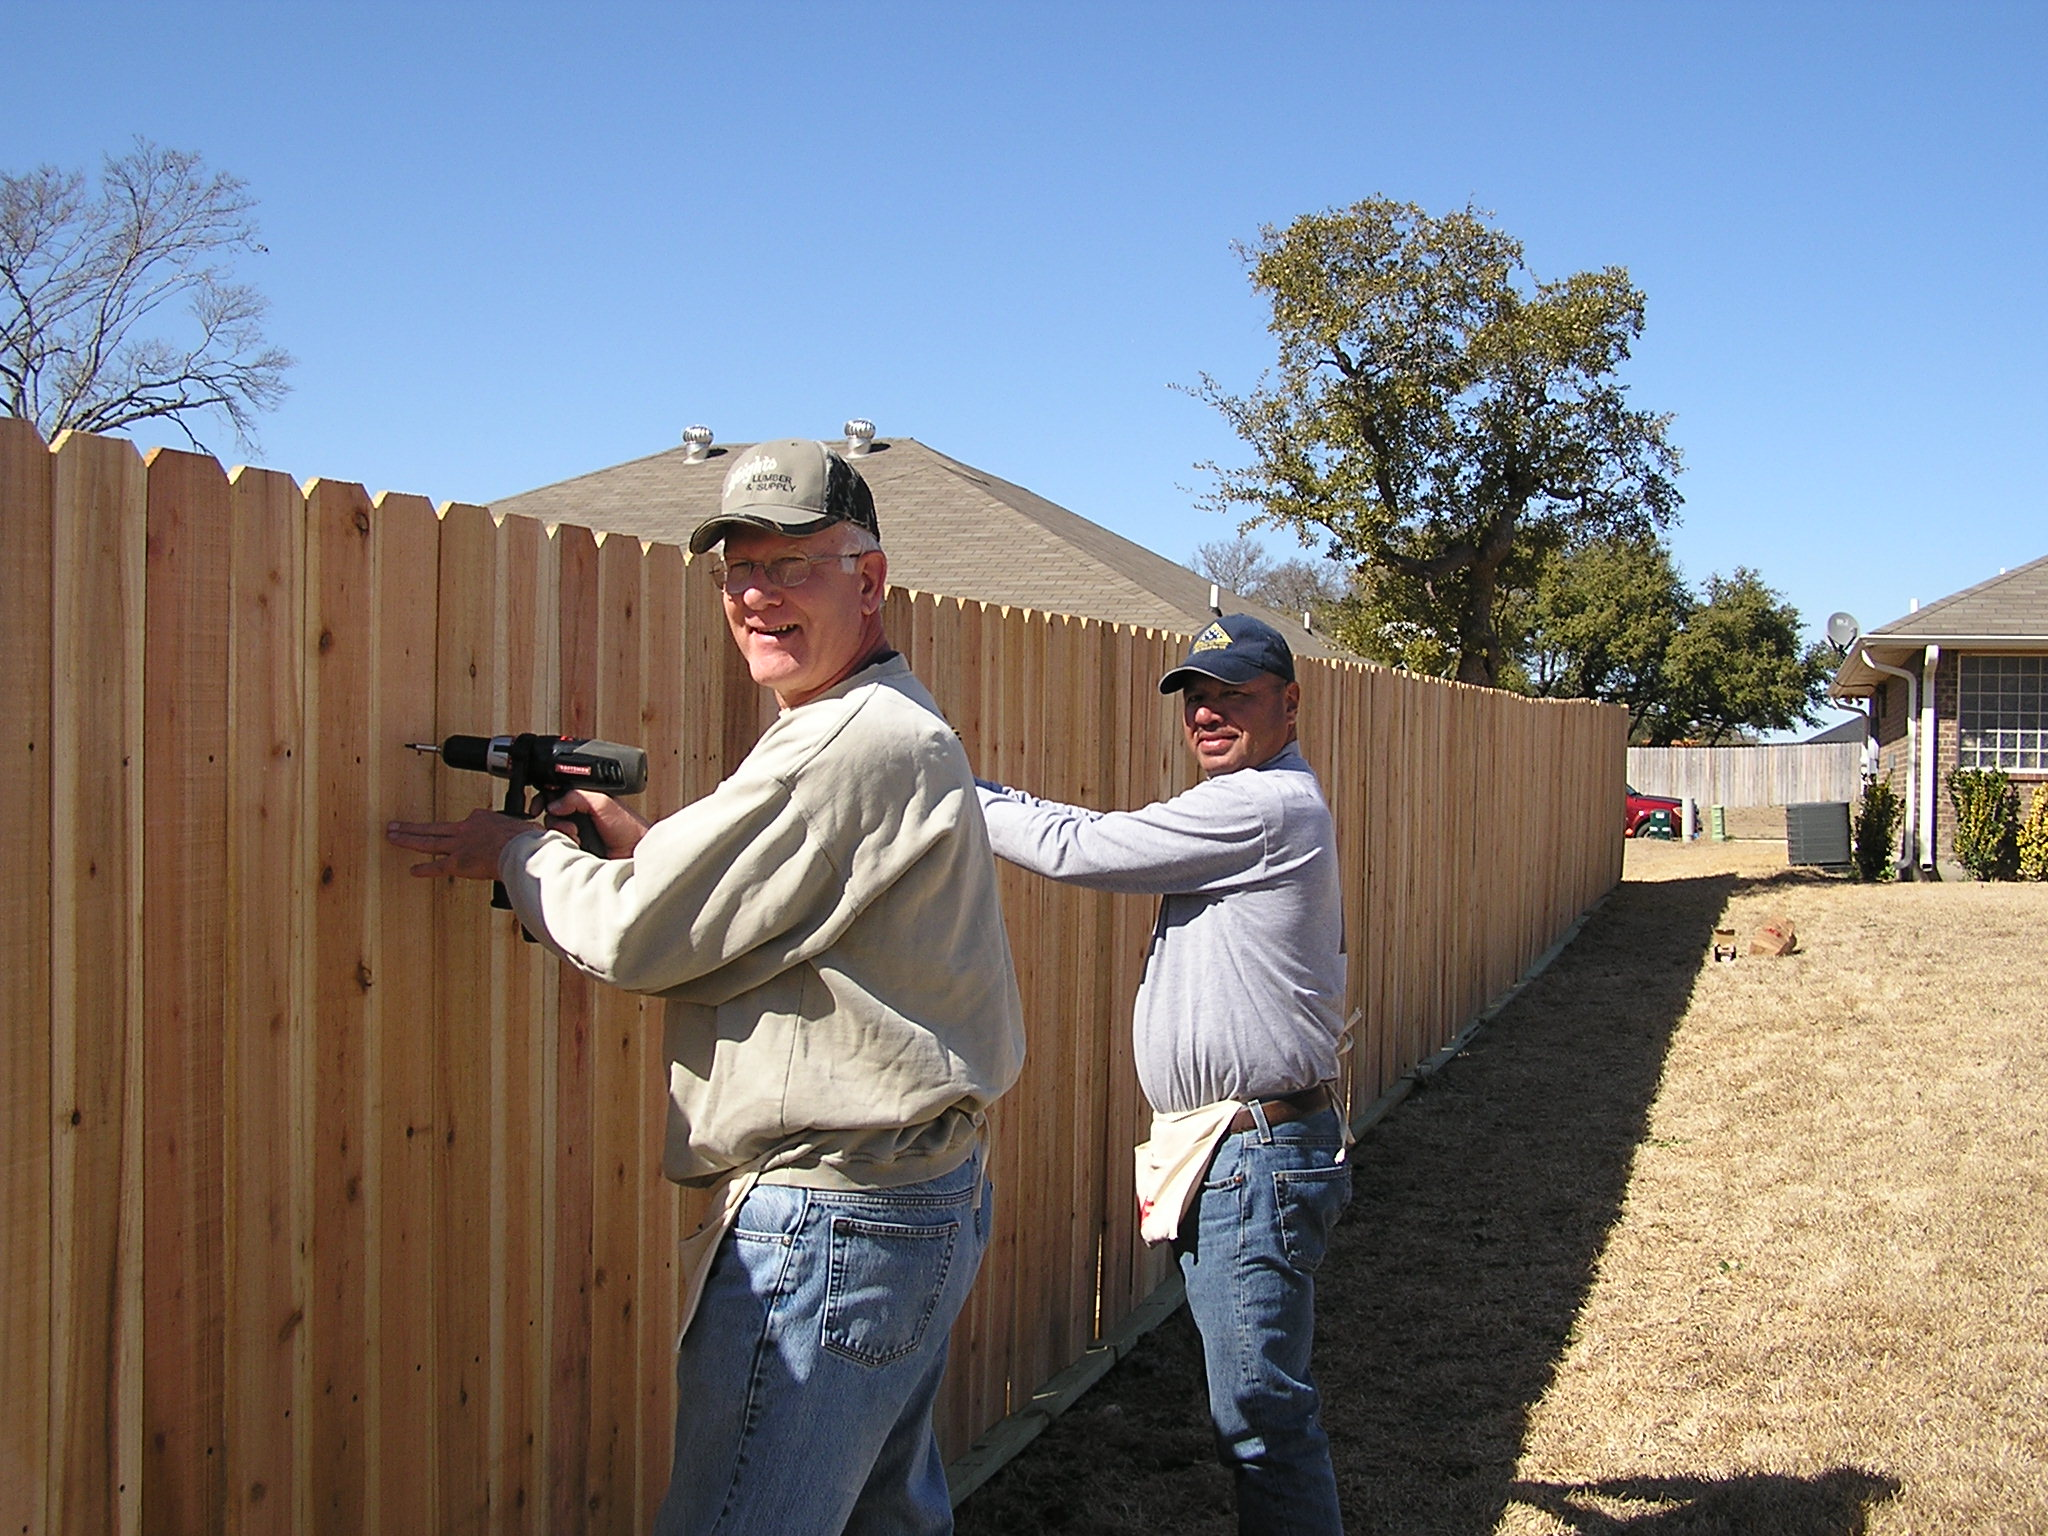 Killeen Noon Lions Club members building a fence for Gerty.